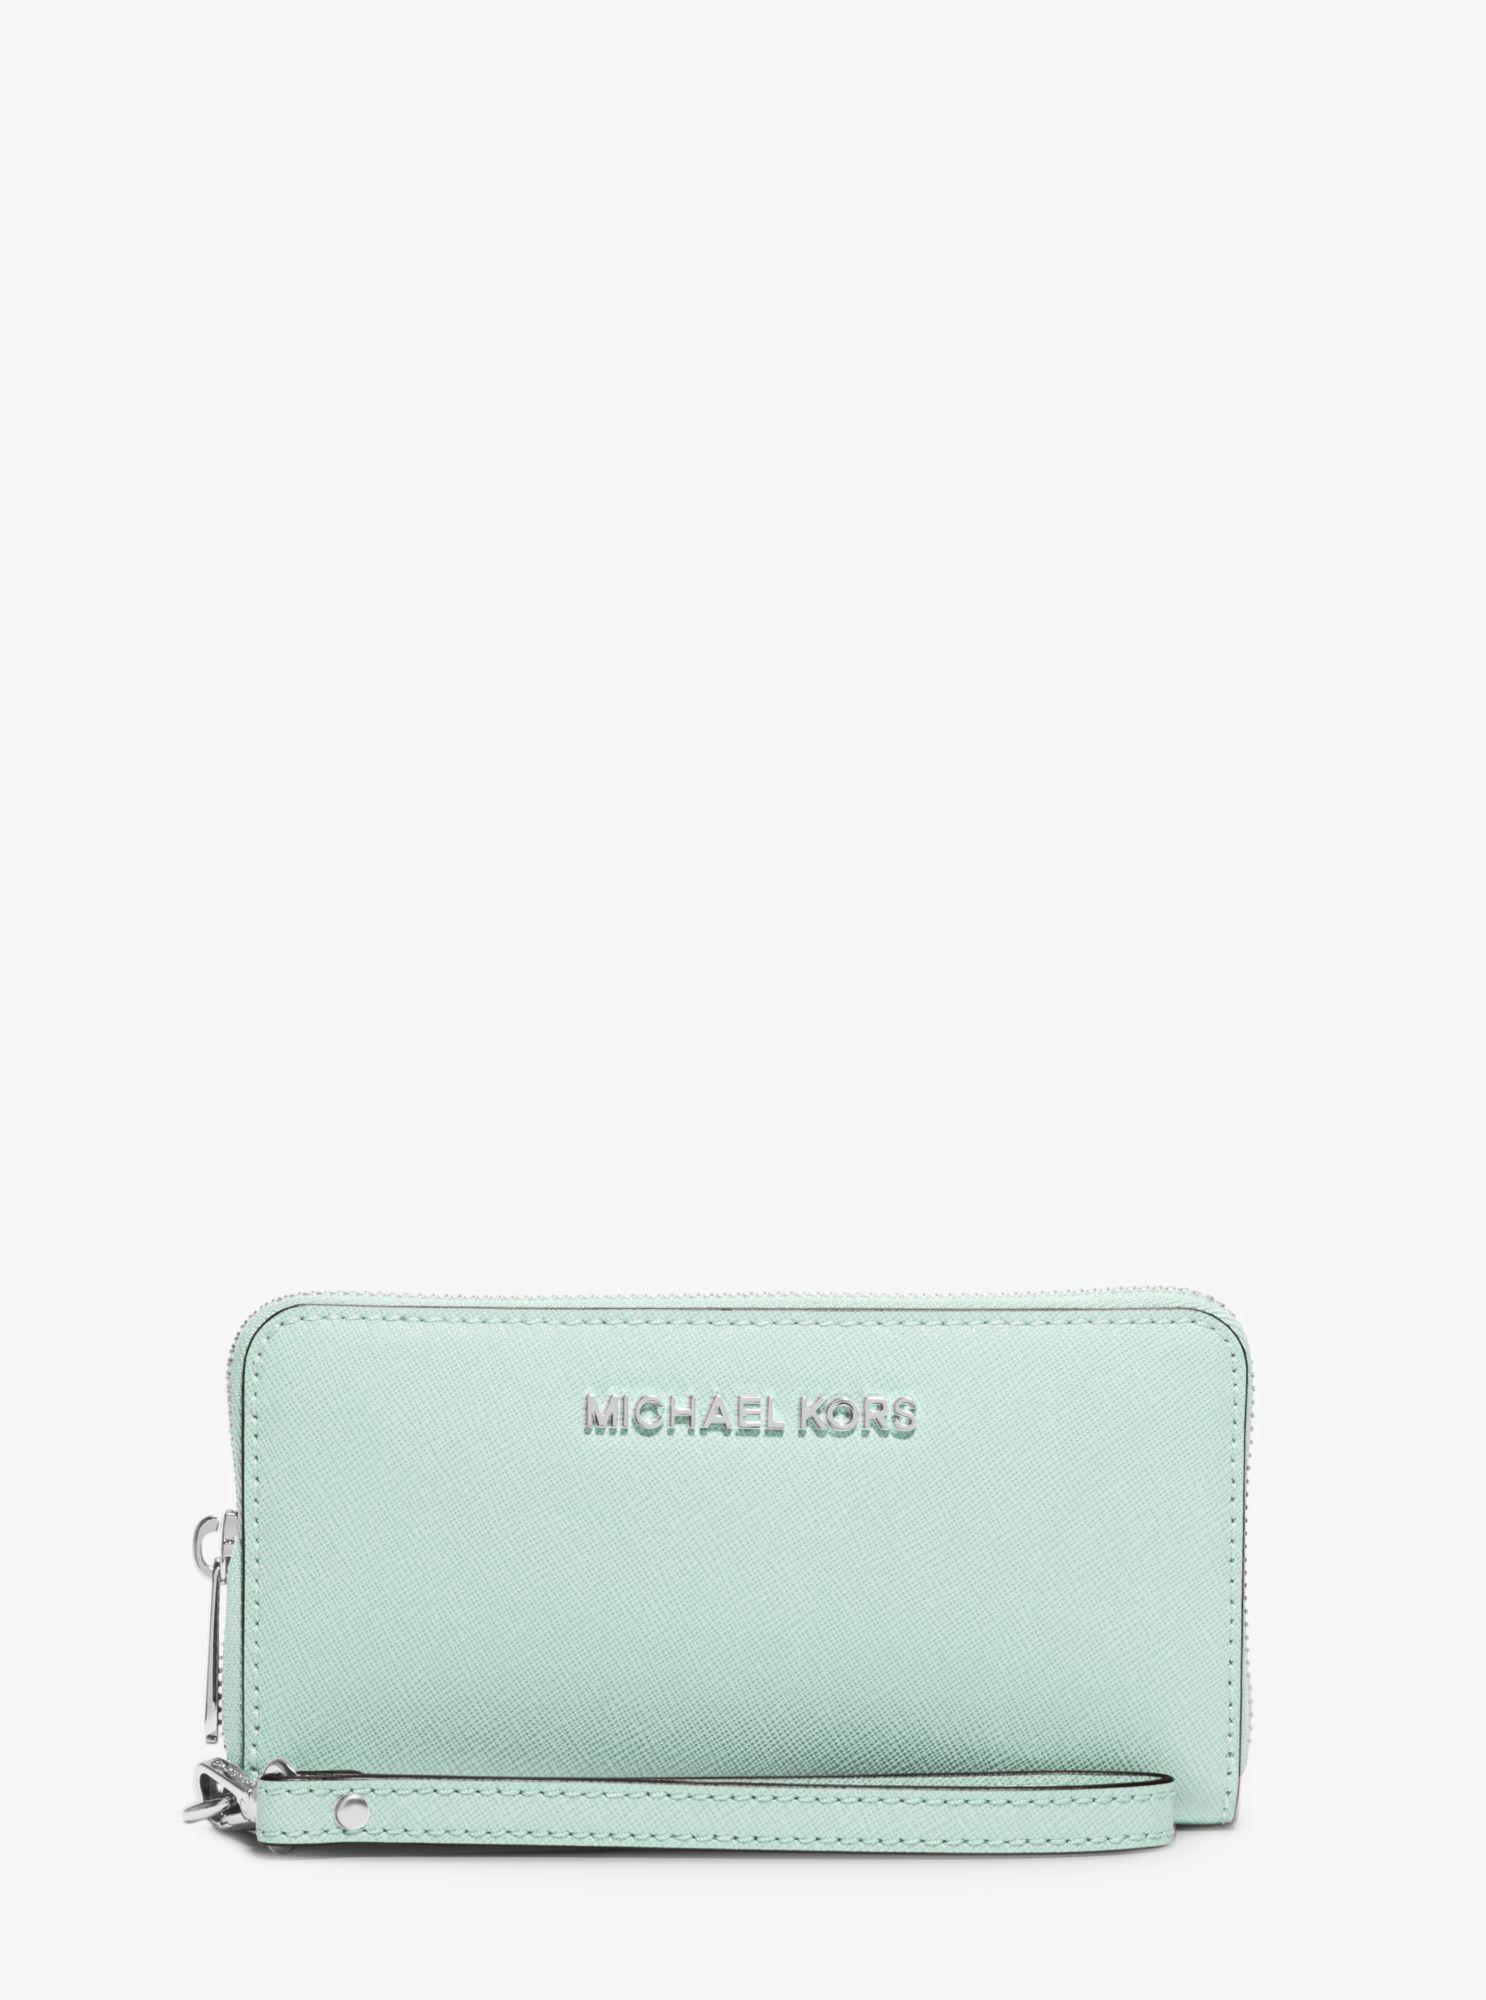 c0c31da14094b MICHAEL KORS Jet Set Travel Large Saffiano Leather Smartphone Wristlet.   michaelkors  all